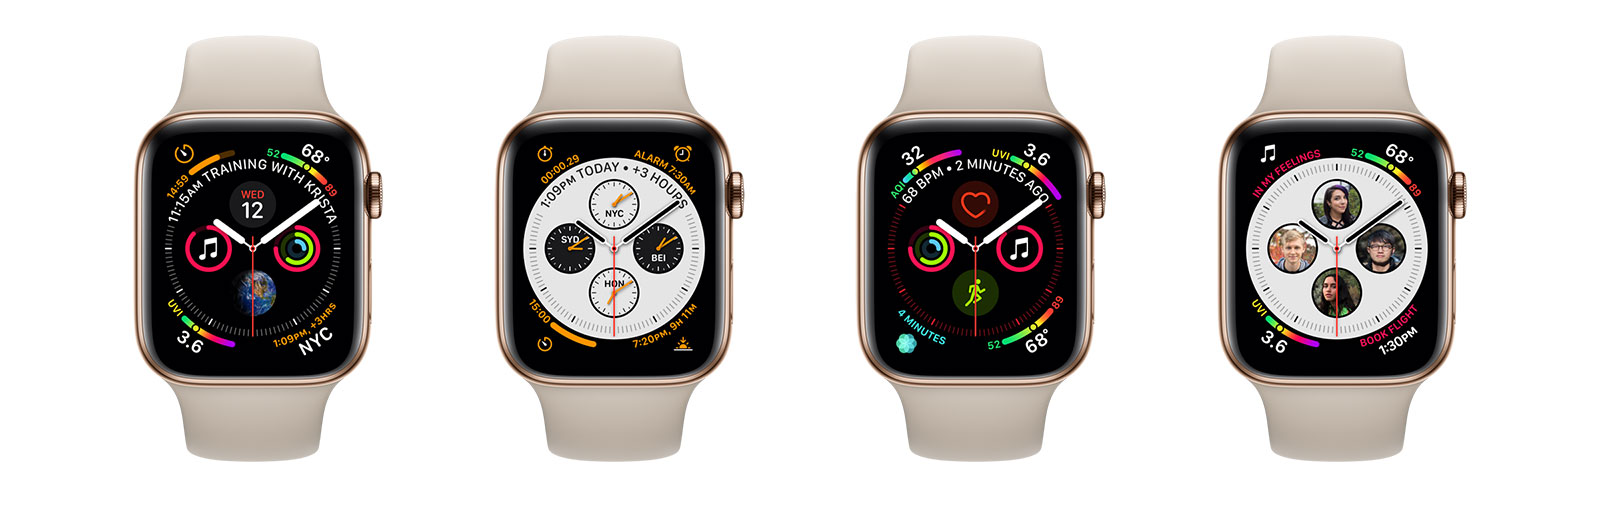 Apple Watch Series 4, 2018